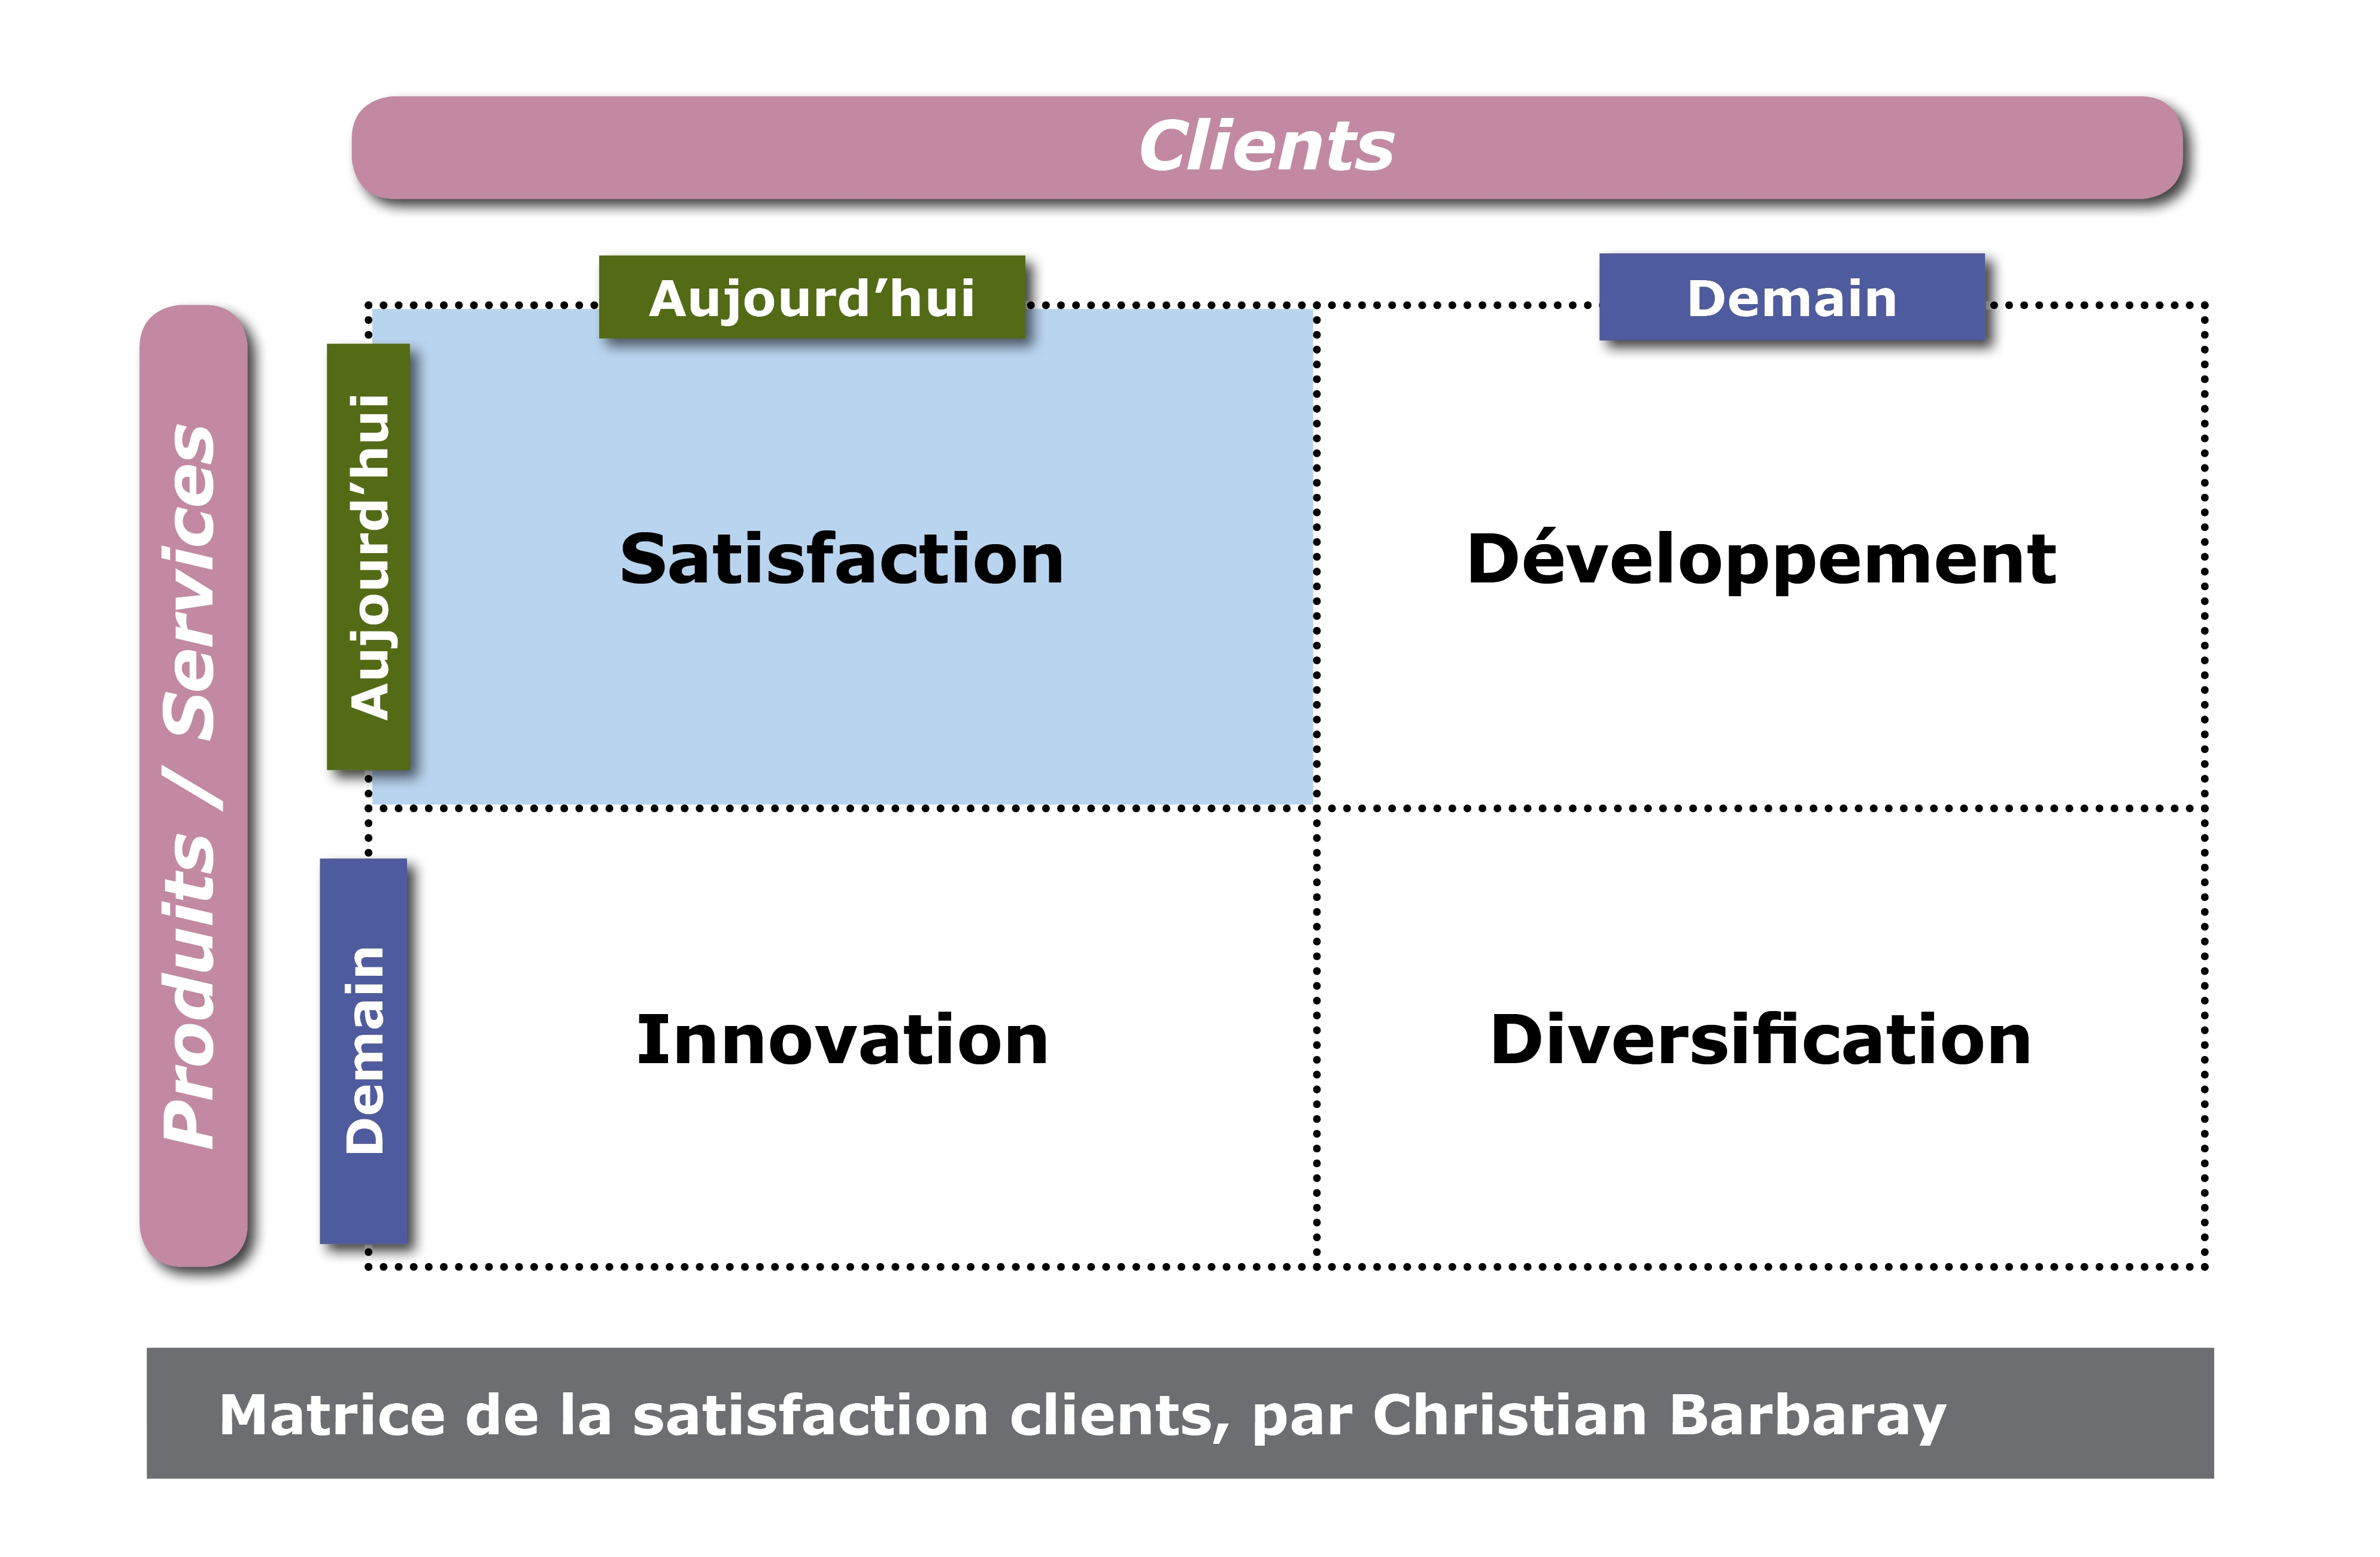 la satisfaction 90 theories of customer satisfaction a number of theoretical approaches have been utilized to explain the relationship between disconfirmation and satisfaction.